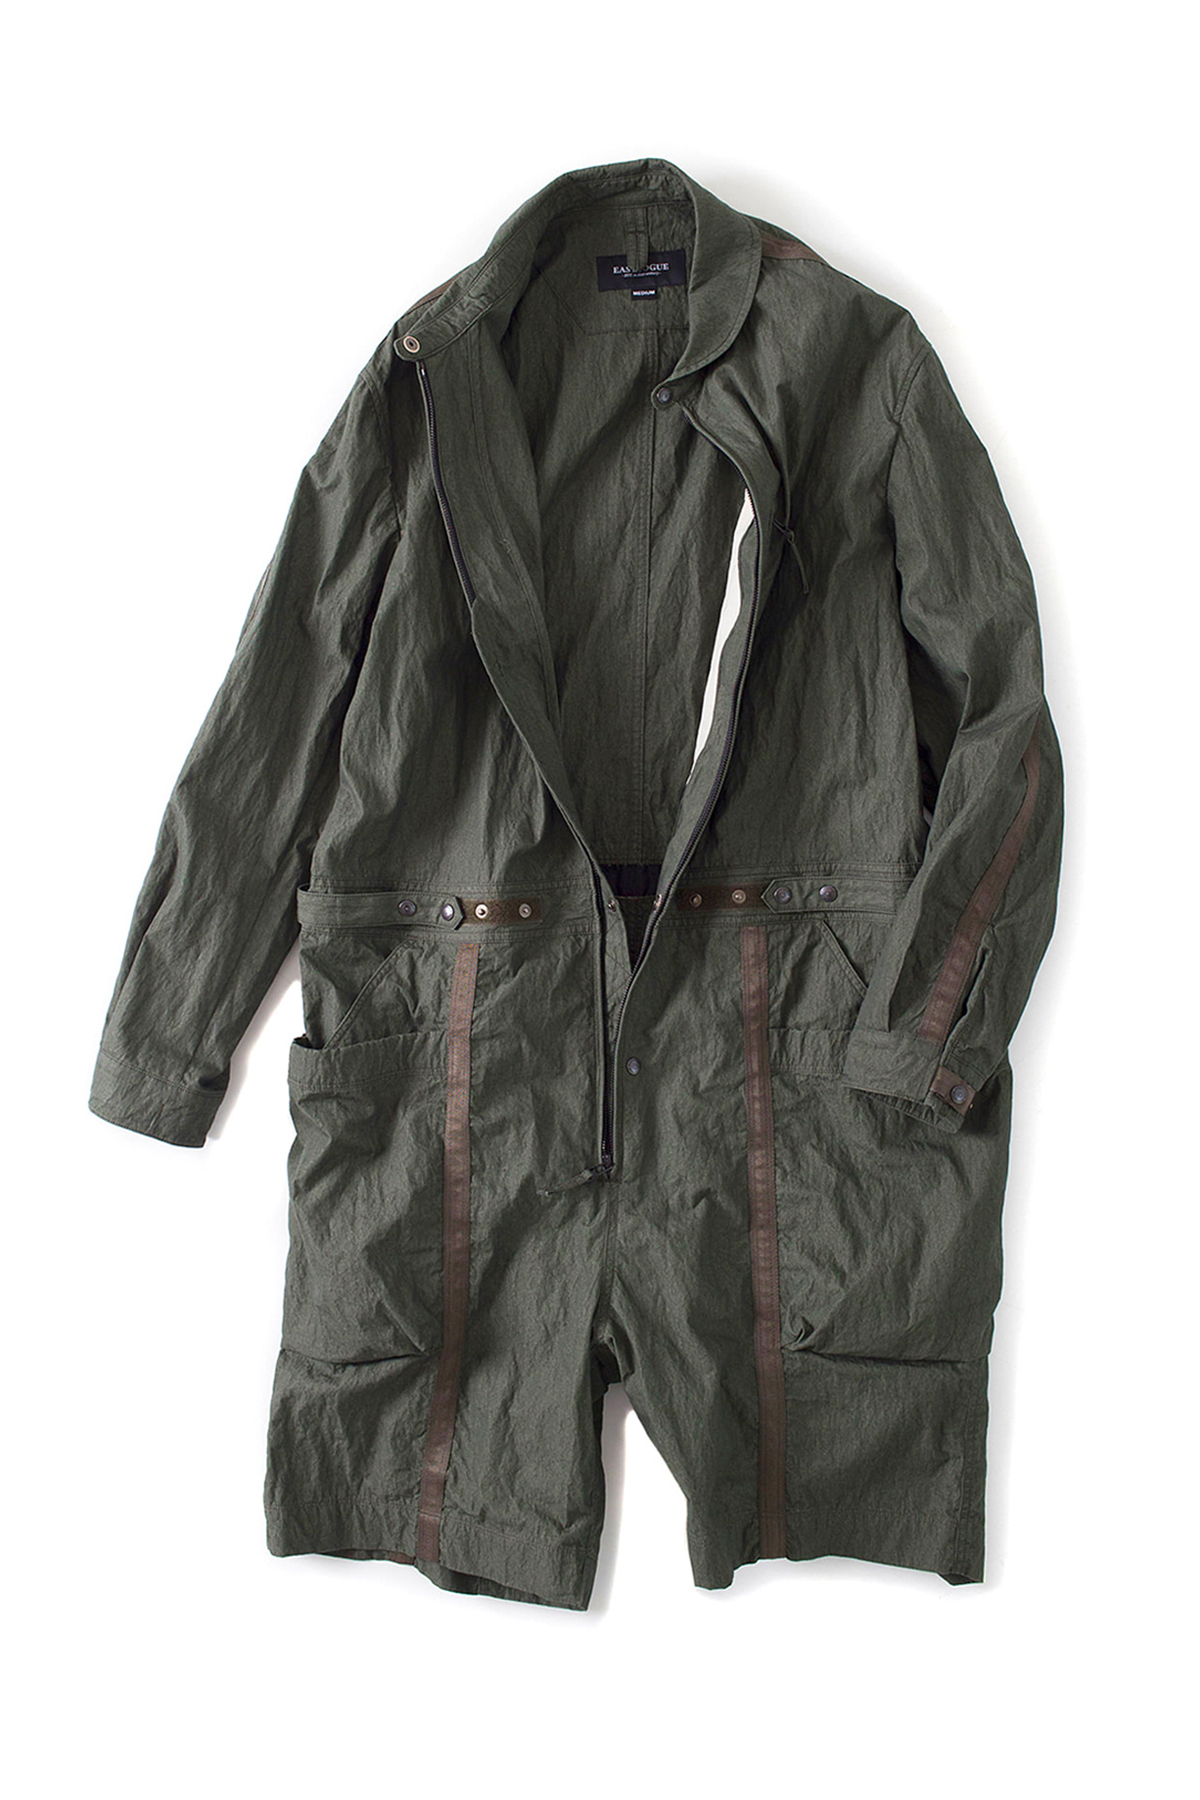 Eastlogue : Wagon Jump Suit (Olive Drap)